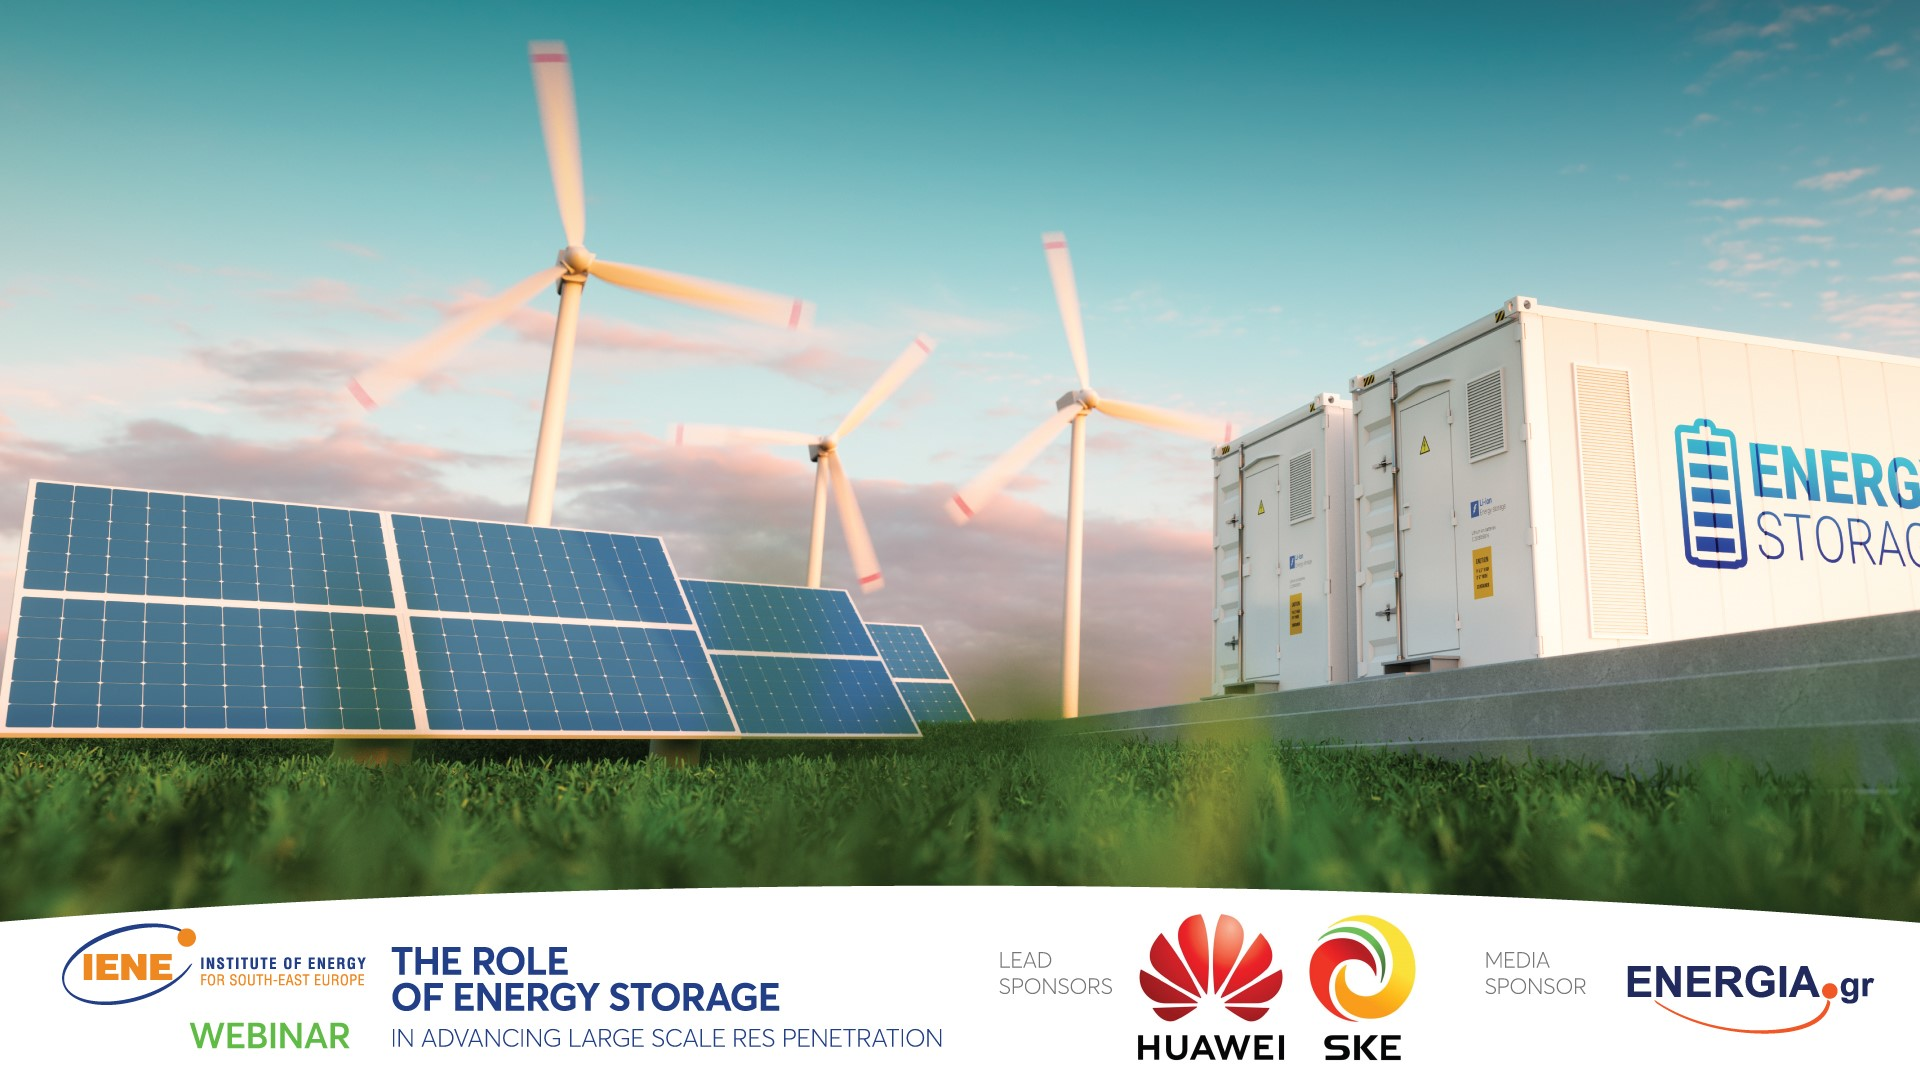 Energy Storage is key to Energy Transition, concludes IENE Workshop